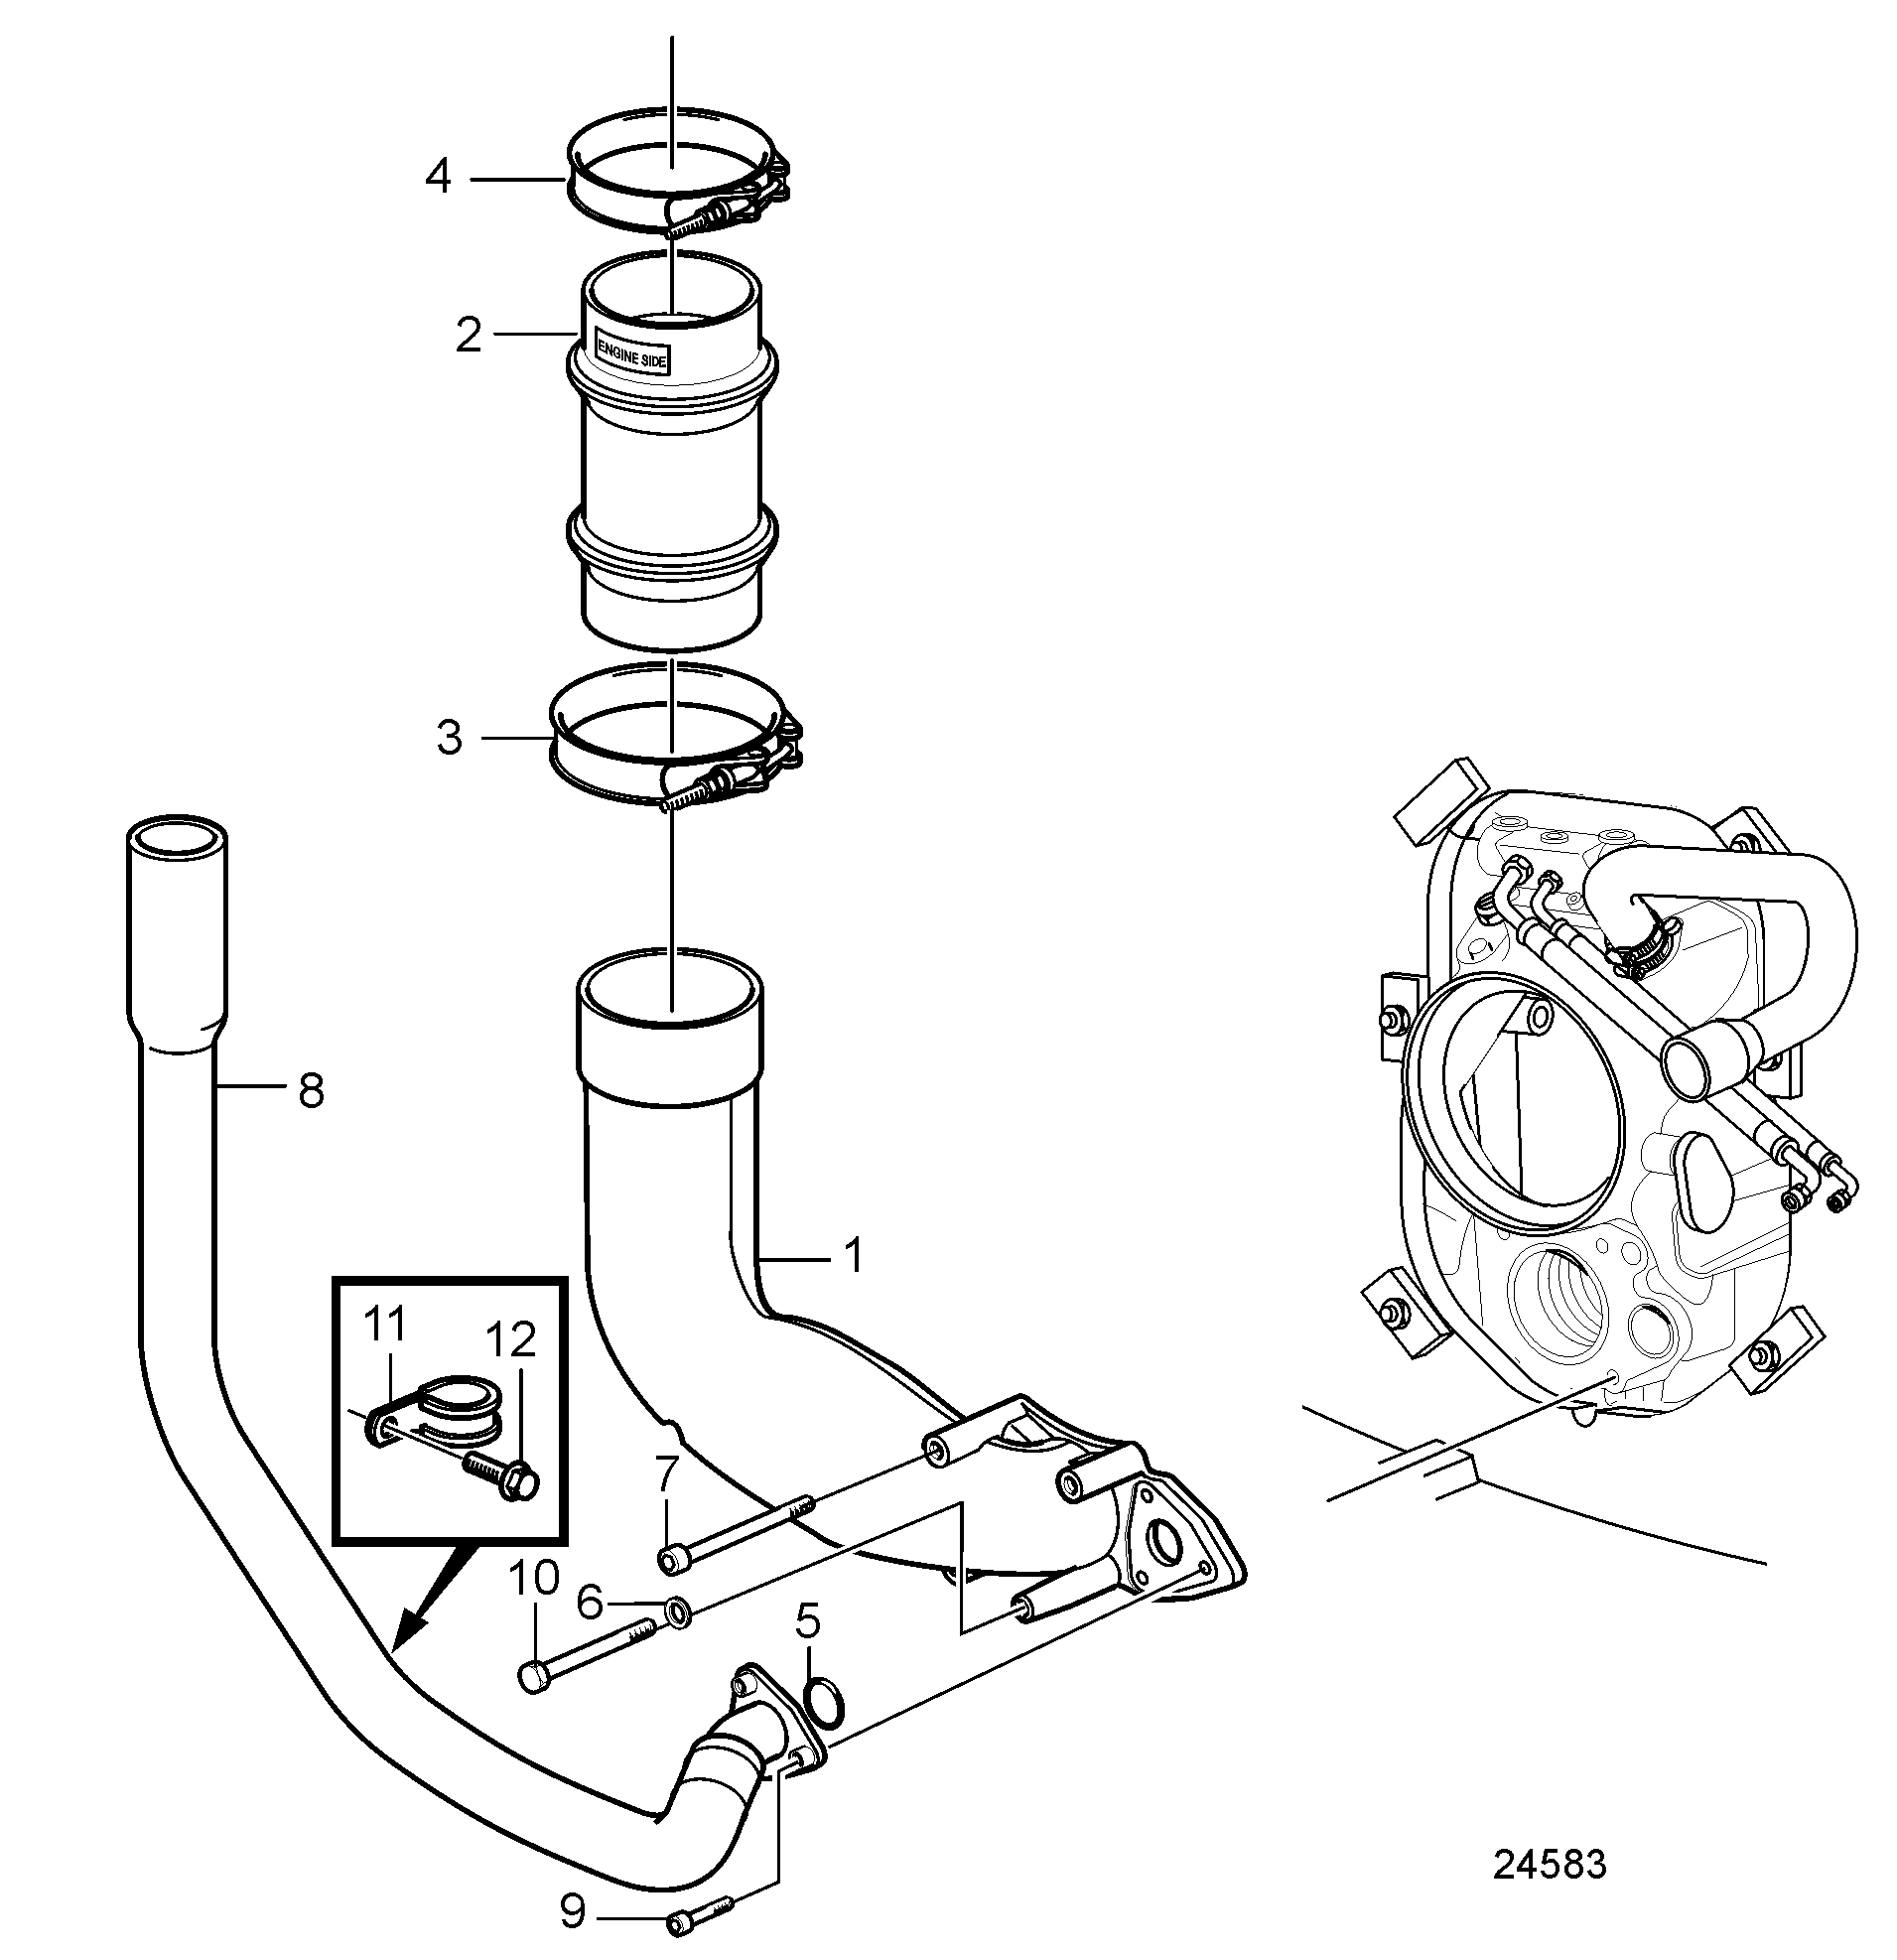 1911x1974 Exhaust Pipe And Cooling Water Pipe Dphdpr Drive Unit